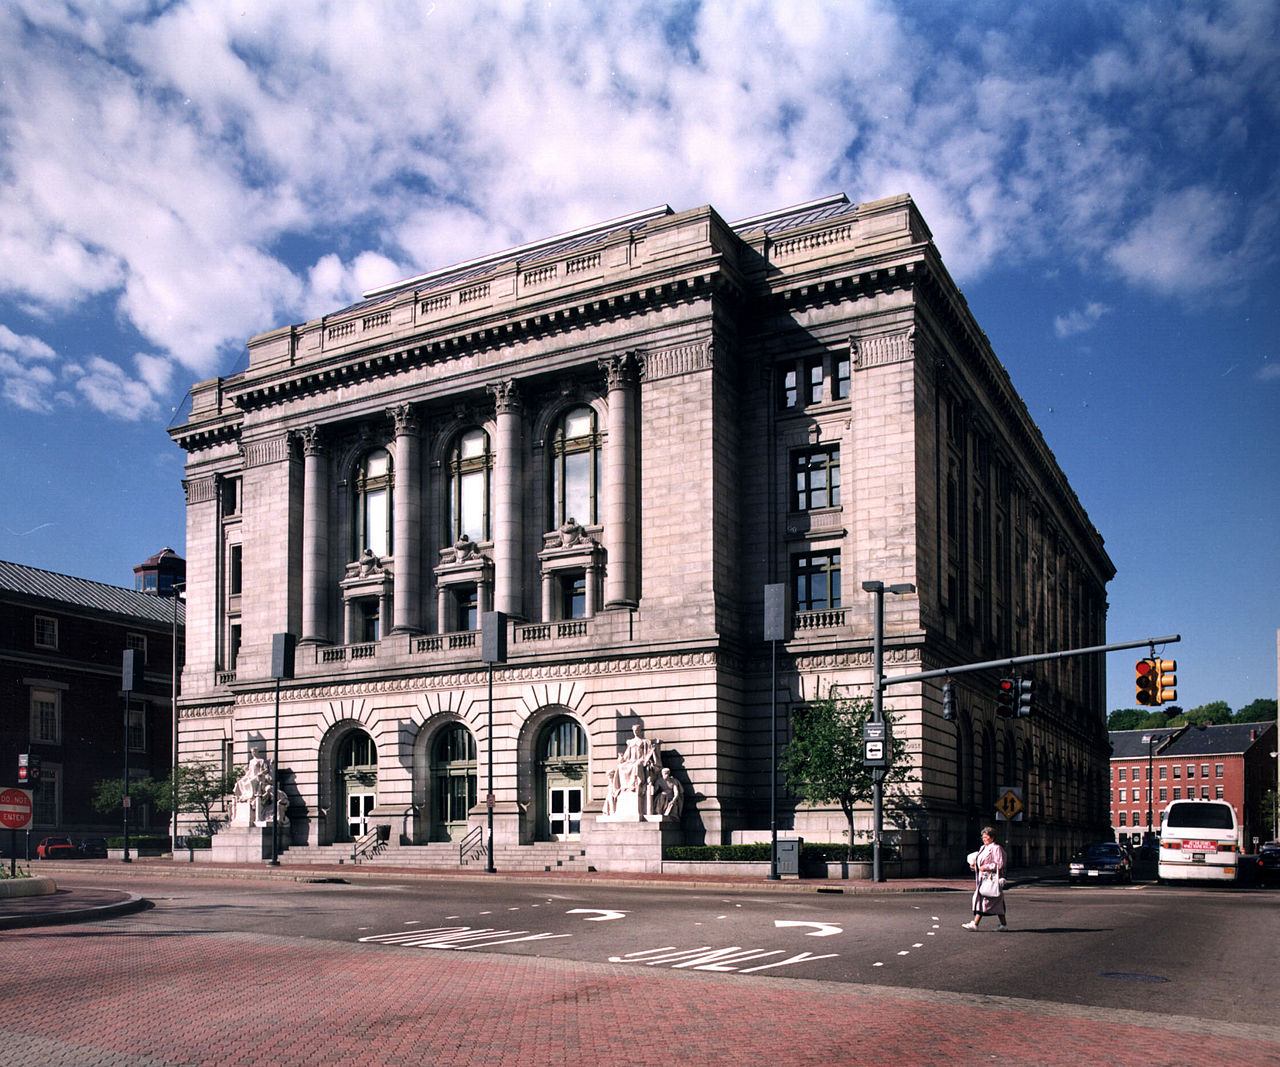 The Federal Building and U.S. Courthouse